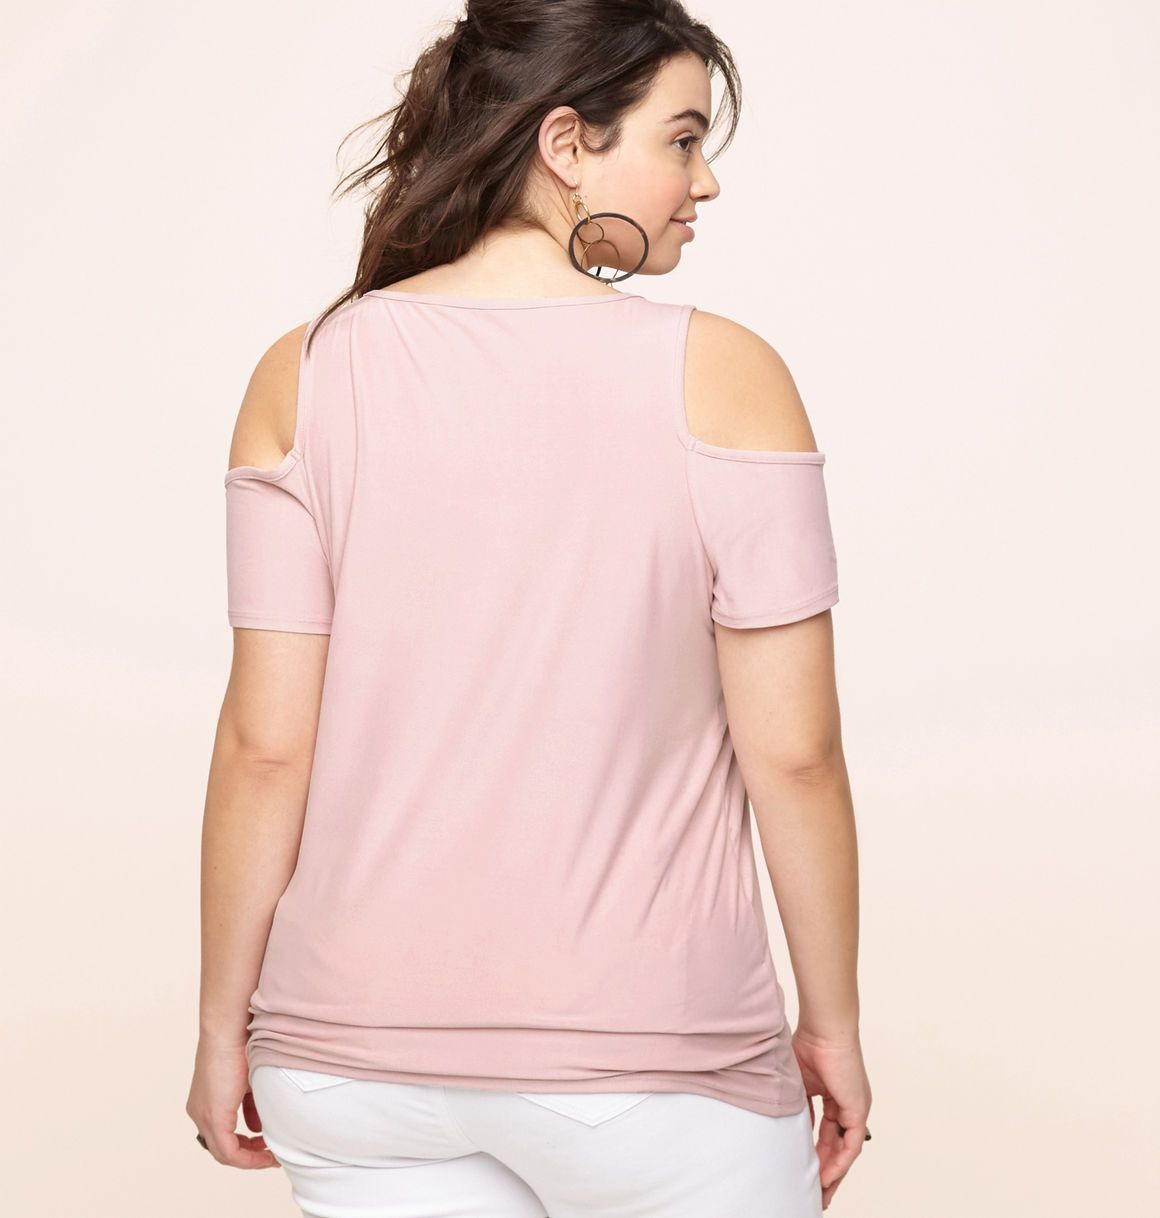 e12082f73ceee Get new trendy tops like our plus size Cold Shoulder Top available in sizes  14-24 online at loralette.com. Avenue Store